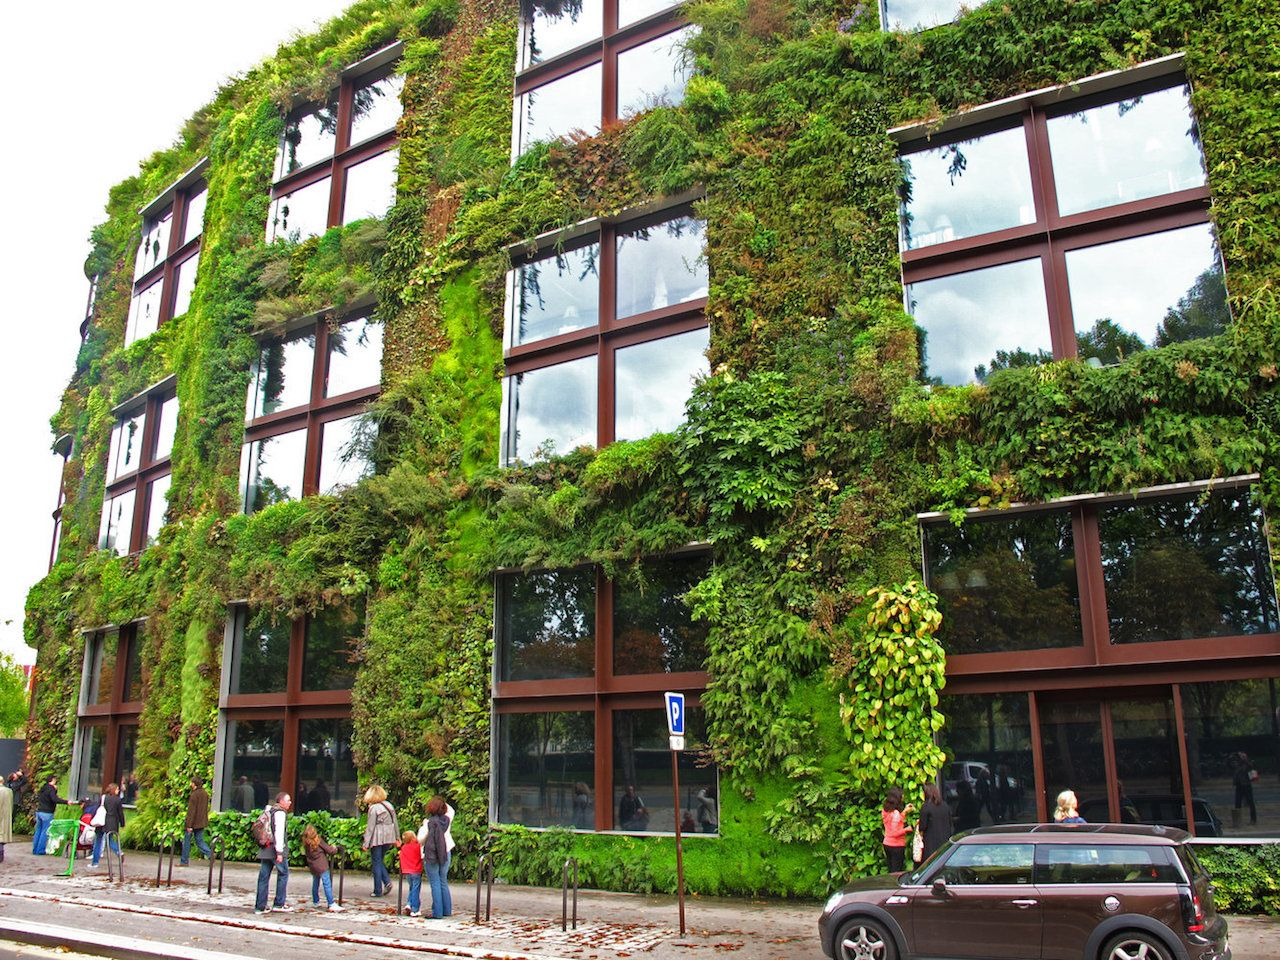 Massive living wall around a building